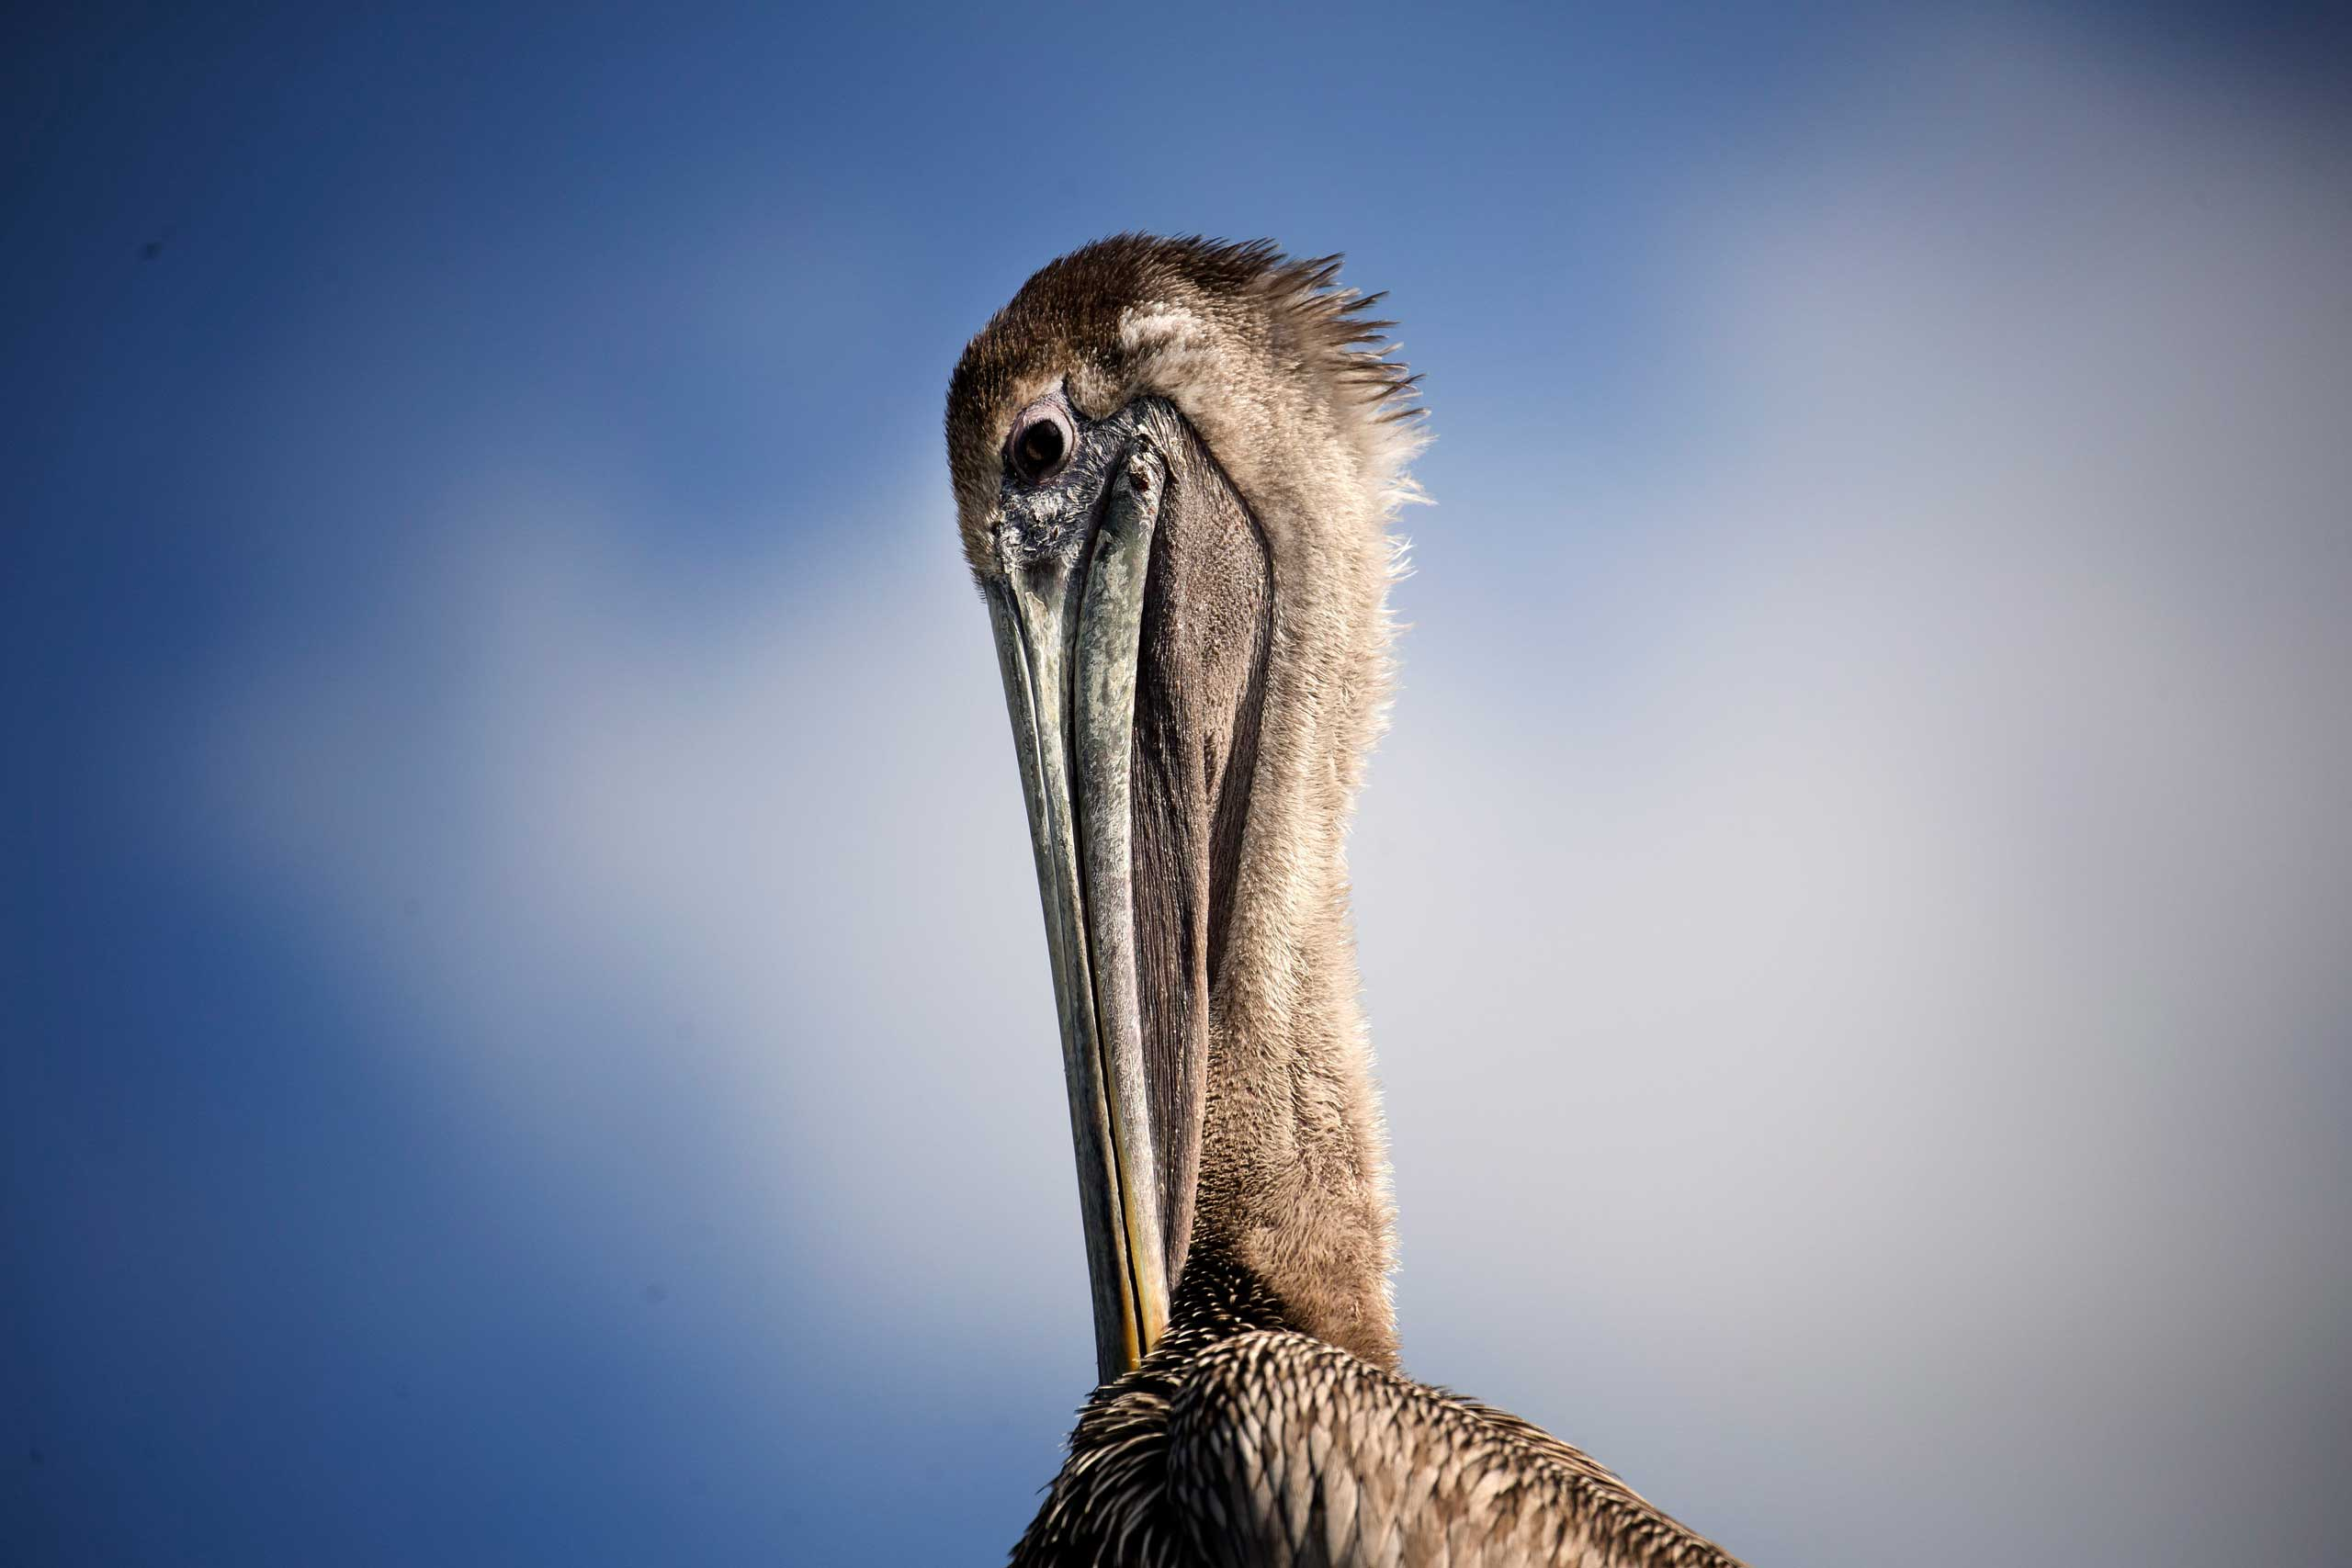 Feb. 3, 2015. A pelican sits in the sun at Miami's Pelican Harbor Seabird Station. The rehabilitation manager reports that 75 percent of the seabirds treated at the station were injured by fishing line and hooks.